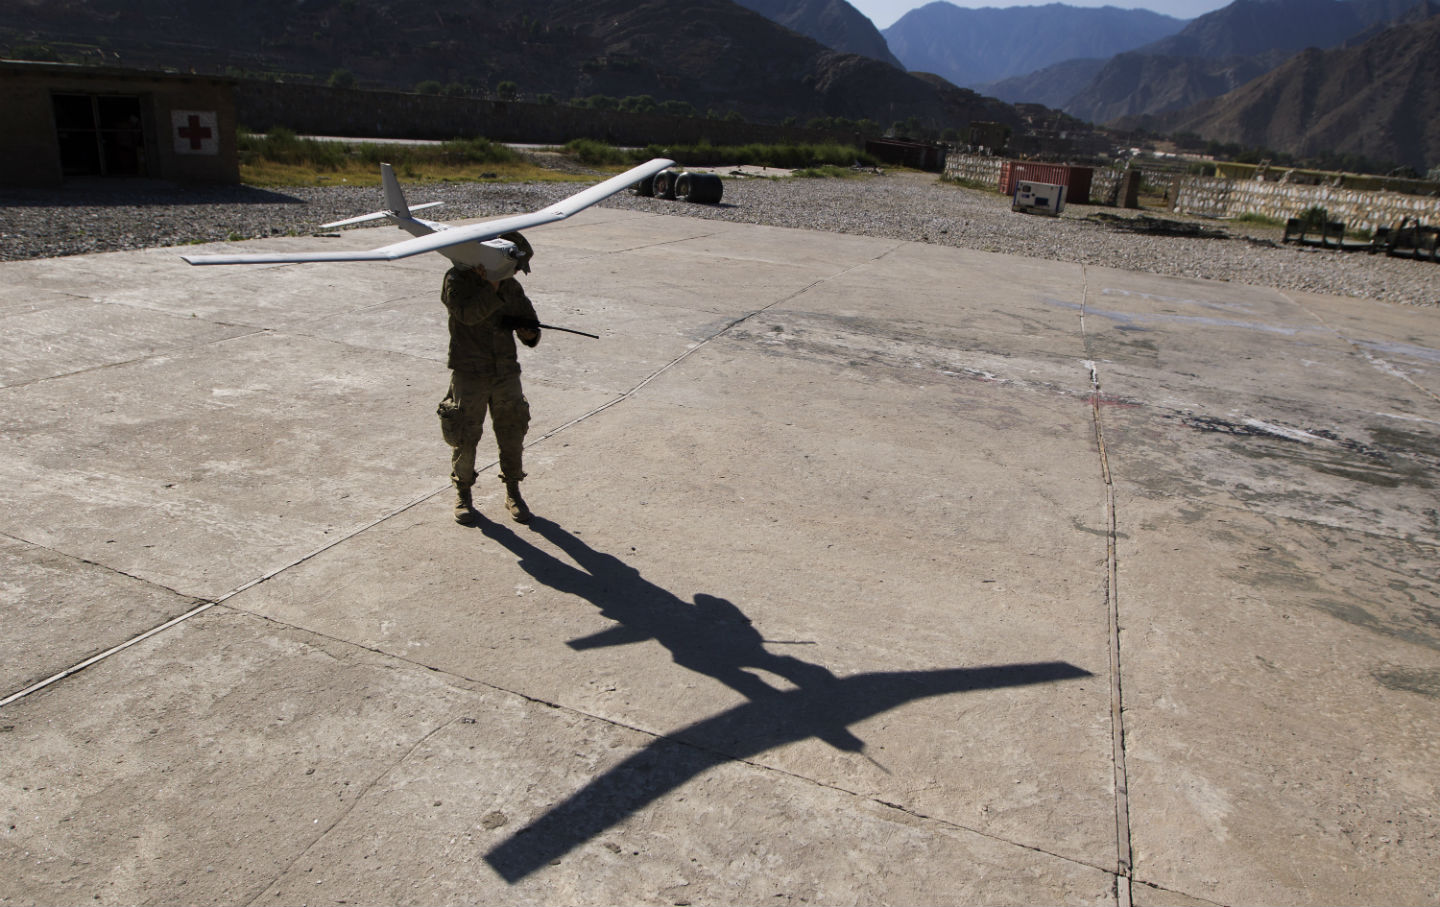 Soldier-launches-drone-in-Afghanistan